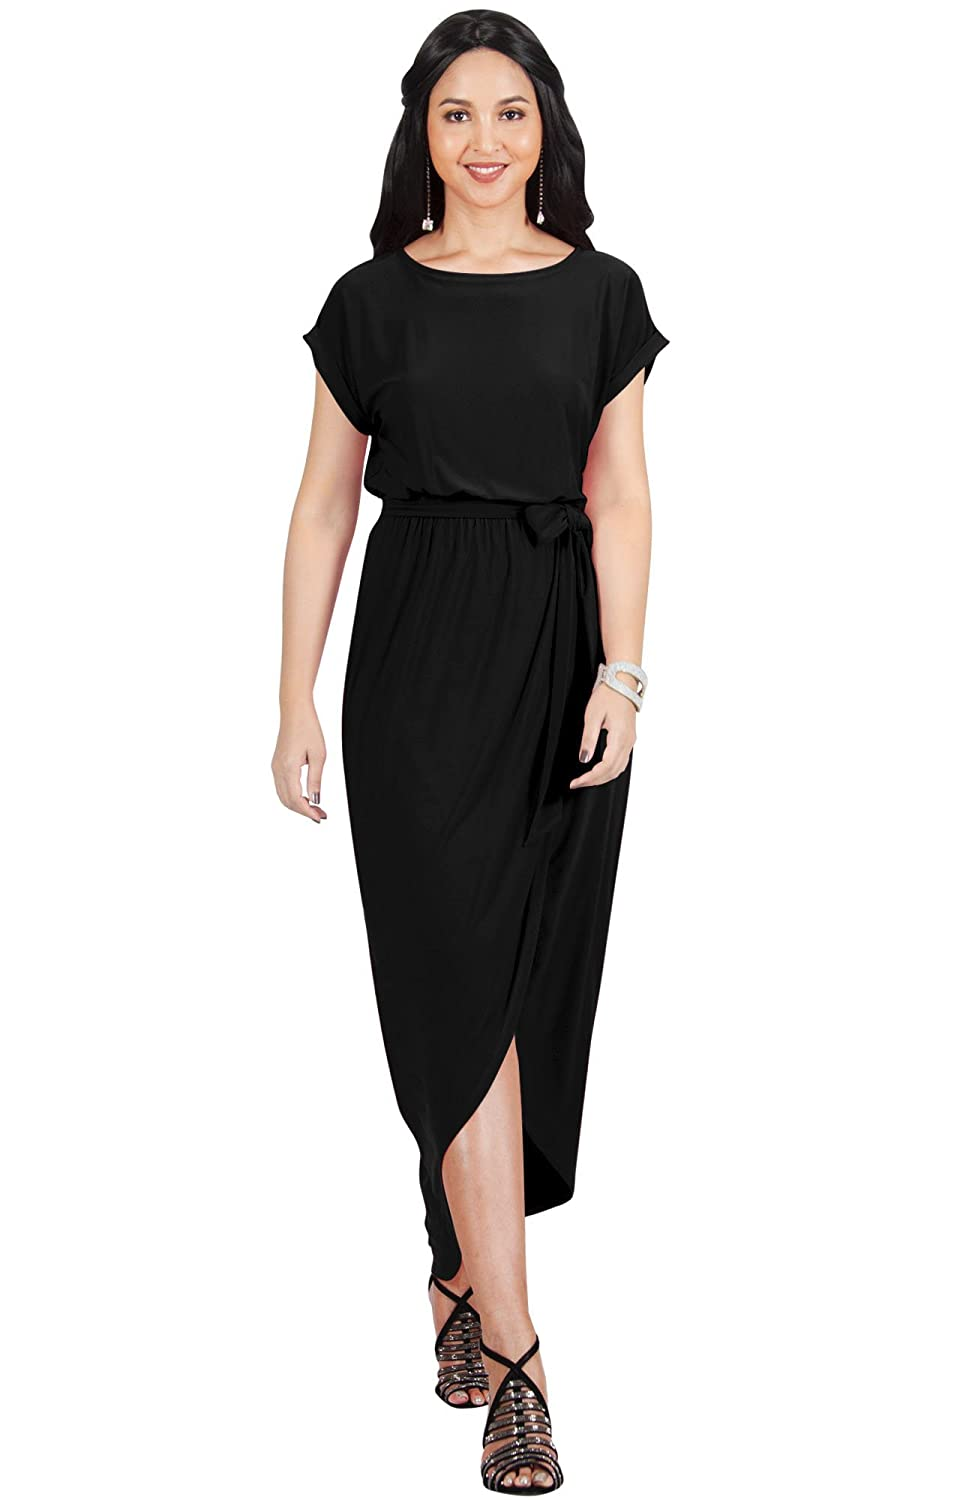 dde7d8d3f1ca KOH KOH Womens Short Sleeves Round Neck Solid Draped Asymmetrical Maxi  Dress at Amazon Women s Clothing store